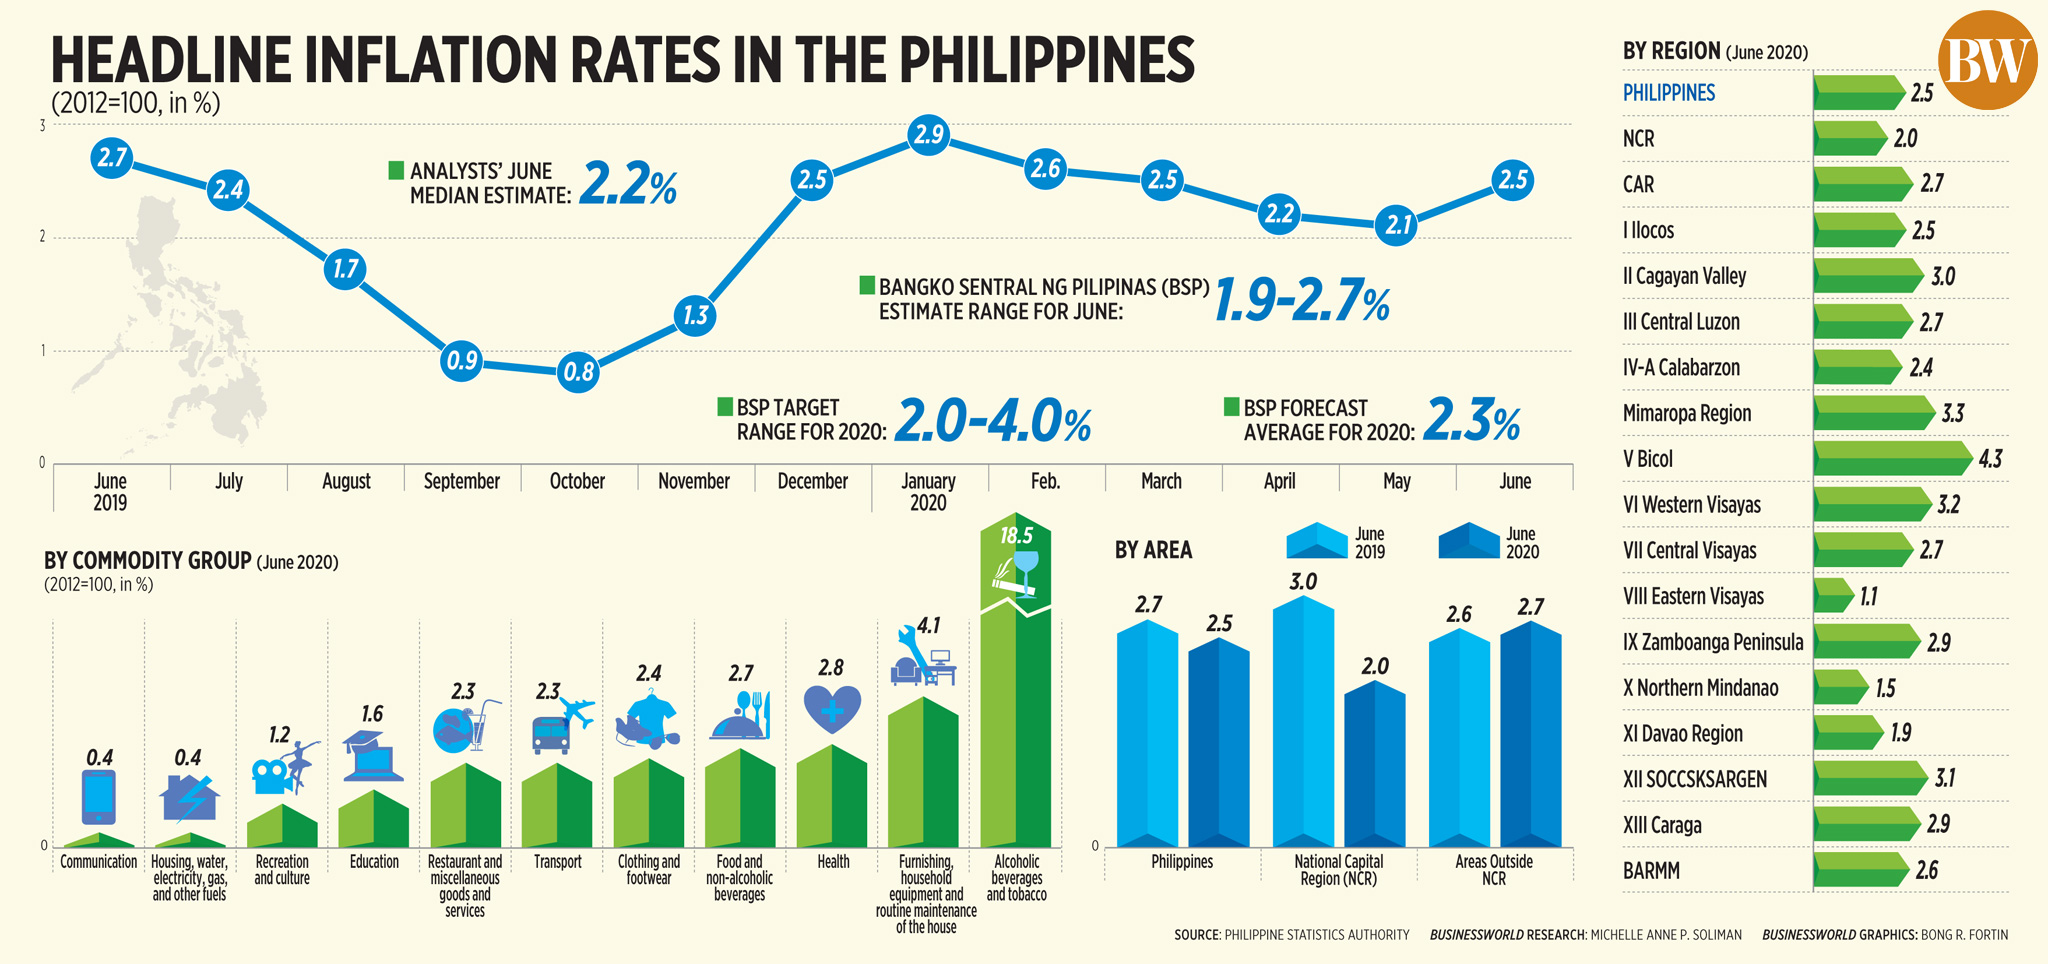 50086542616 3f5a275330 o - Headline inflation rates in the Philippines (June 2020)